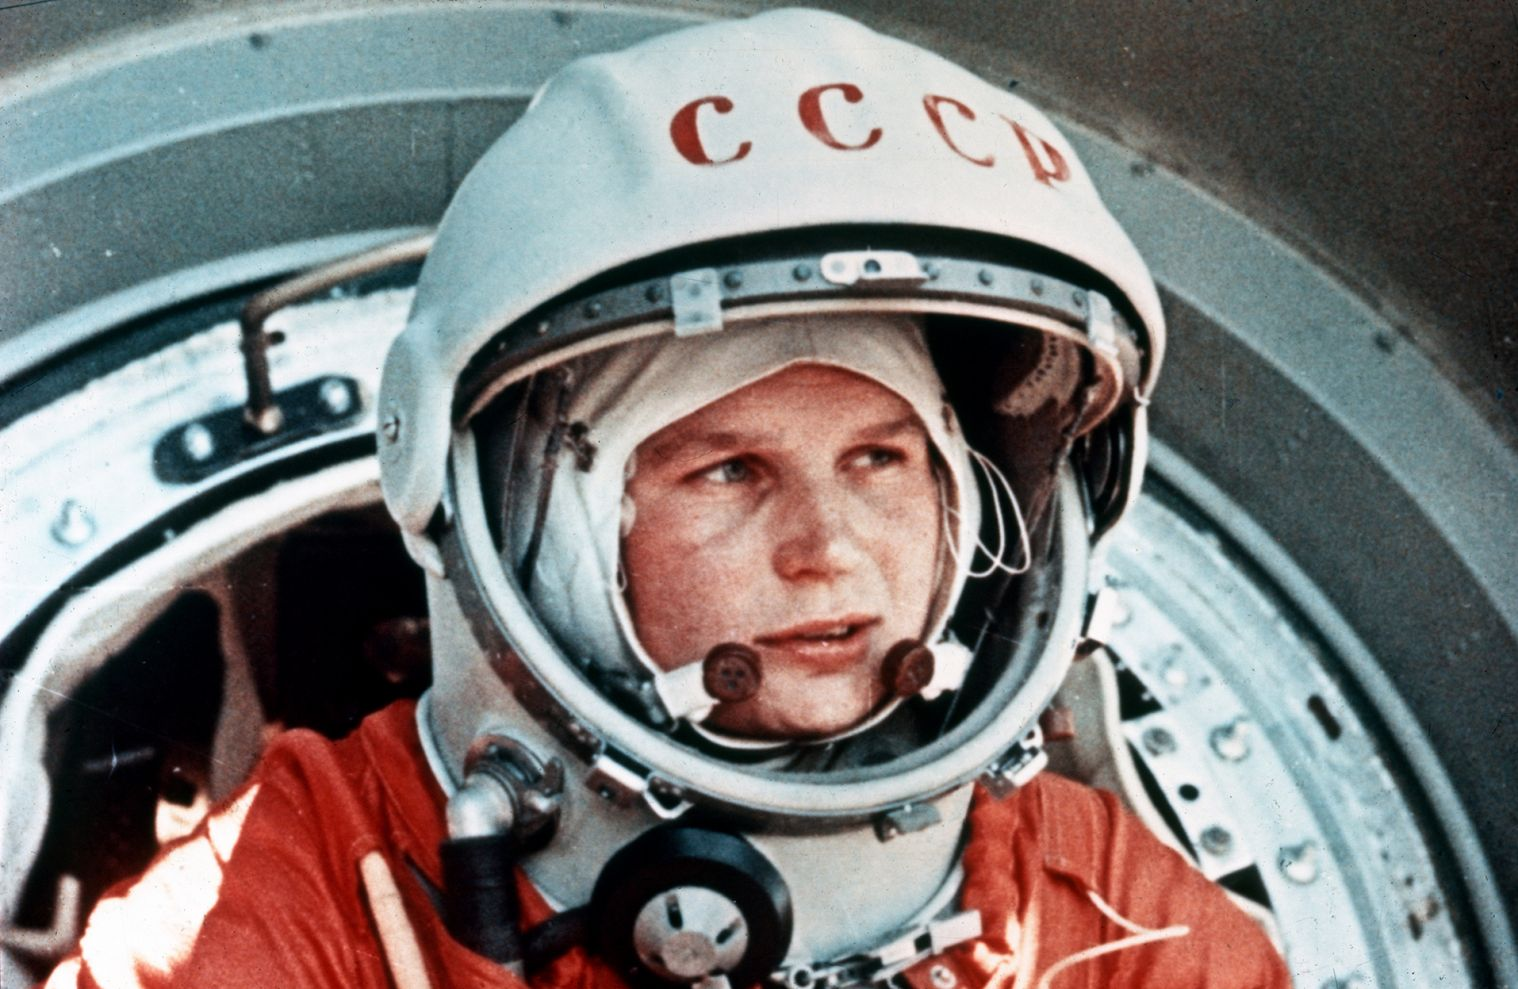 Soviet cosmonaut Valentina Tereshkova, the first woman in space, in front of the Vostok capsule, June 1963.